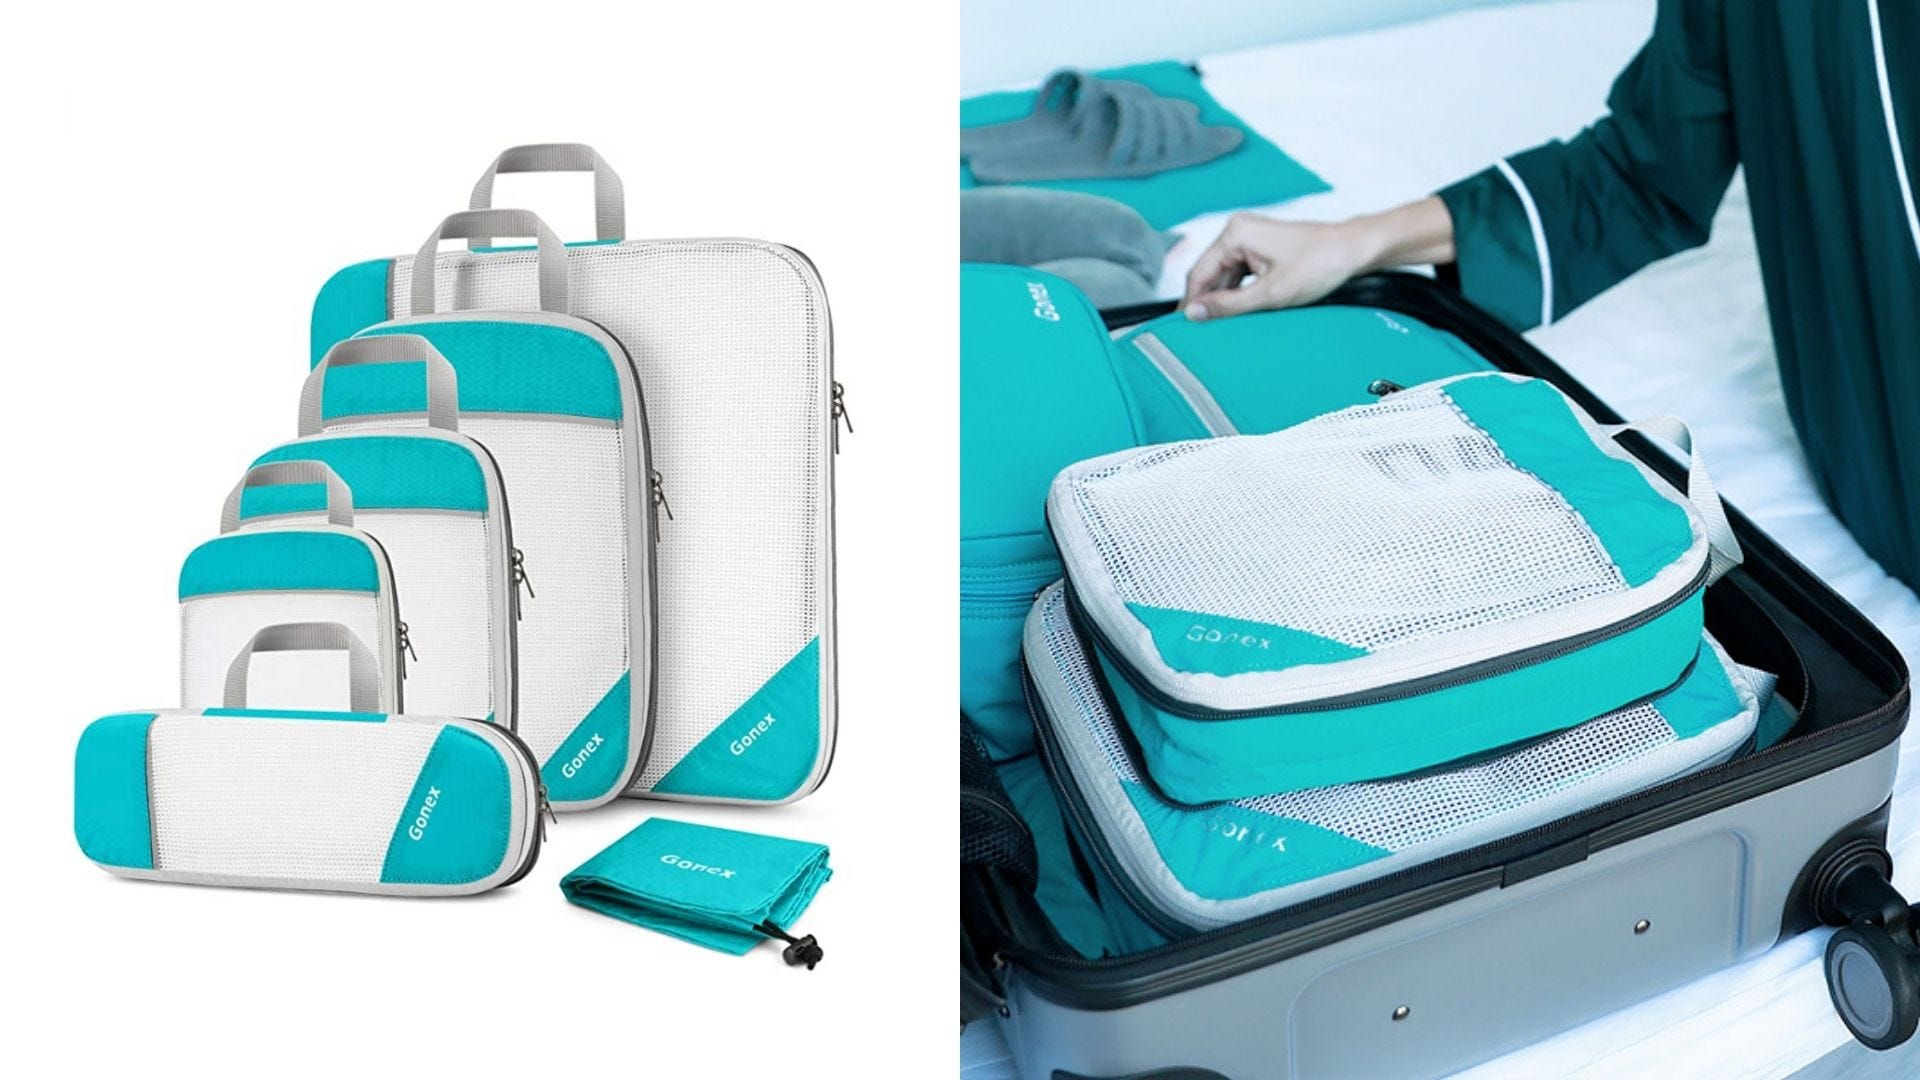 A set of teal packing cubes and someone uses packing cubes in their suitcase